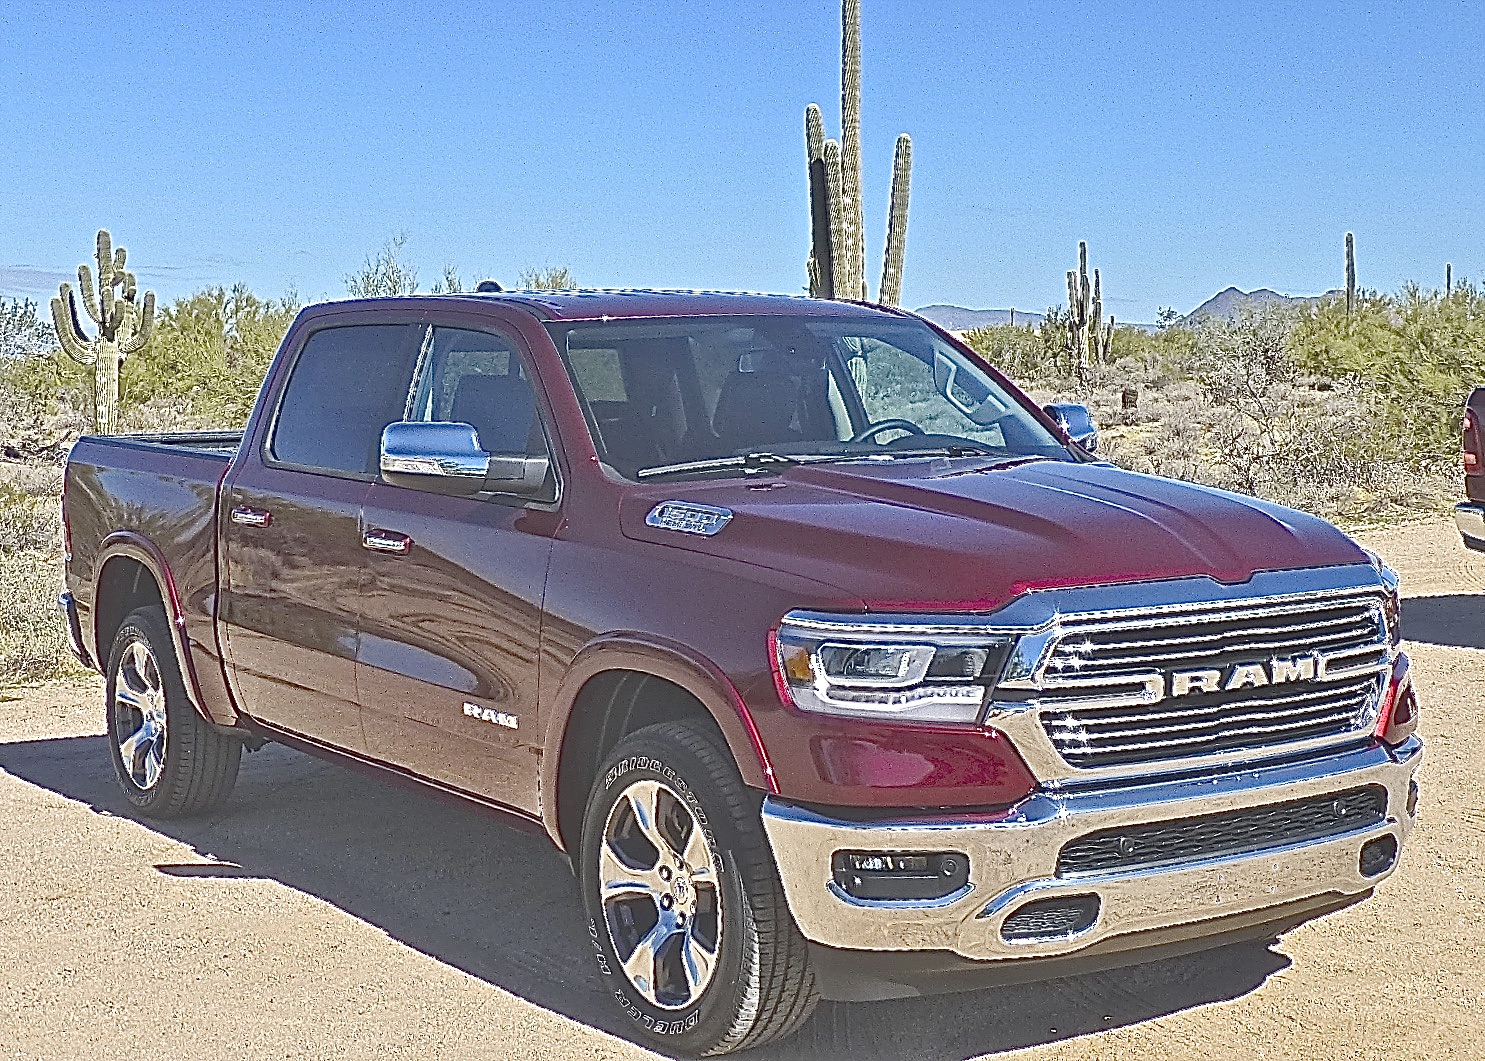 Ram has made huge gains in the U.S. pickup segment, rising to No. 2 behind the Ford F-150.